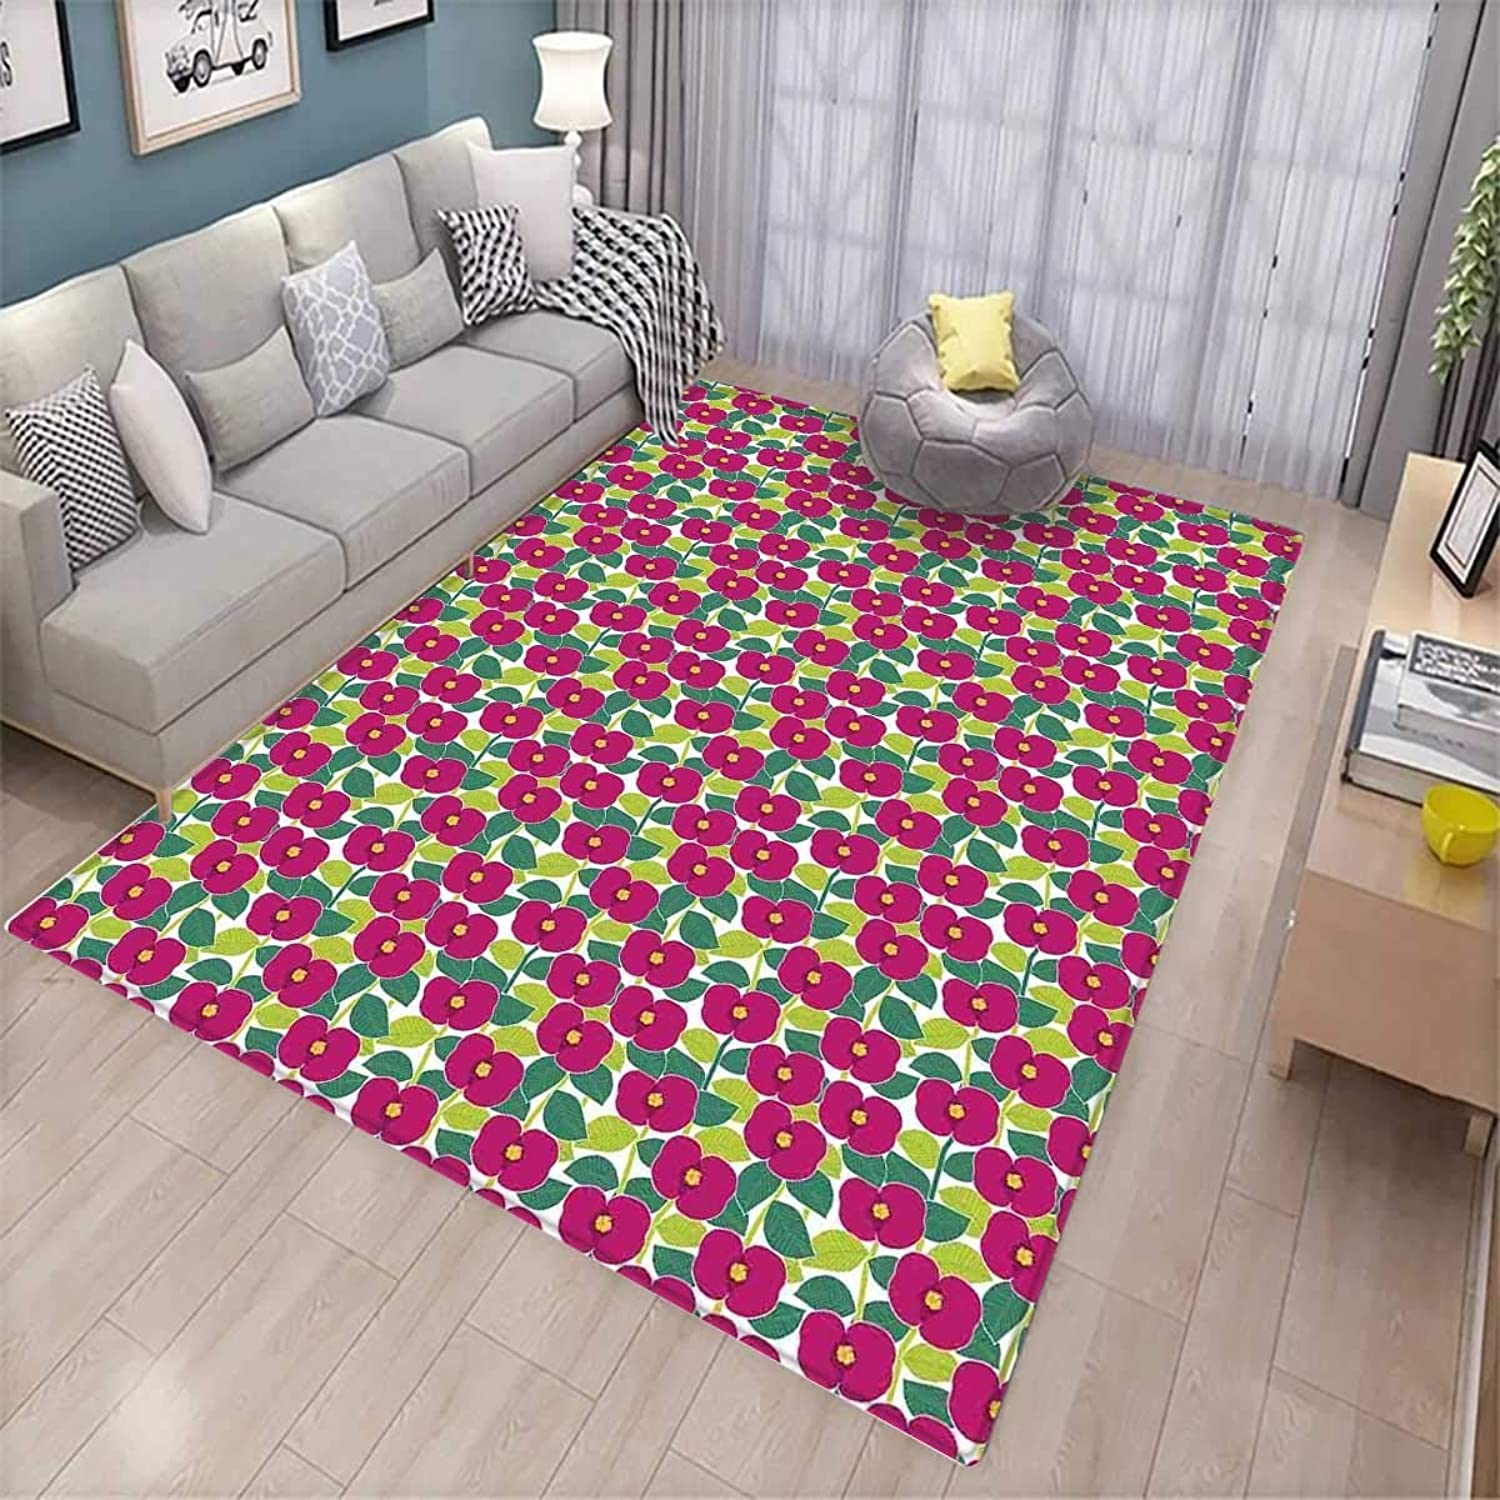 Blossoming Nature Themed Botanical Composition of Flowers and Foliage Leaves Floor Mat Rug Indoor Front Door Kitchen and Living Room Bedroom Mats Rubber Non Slip